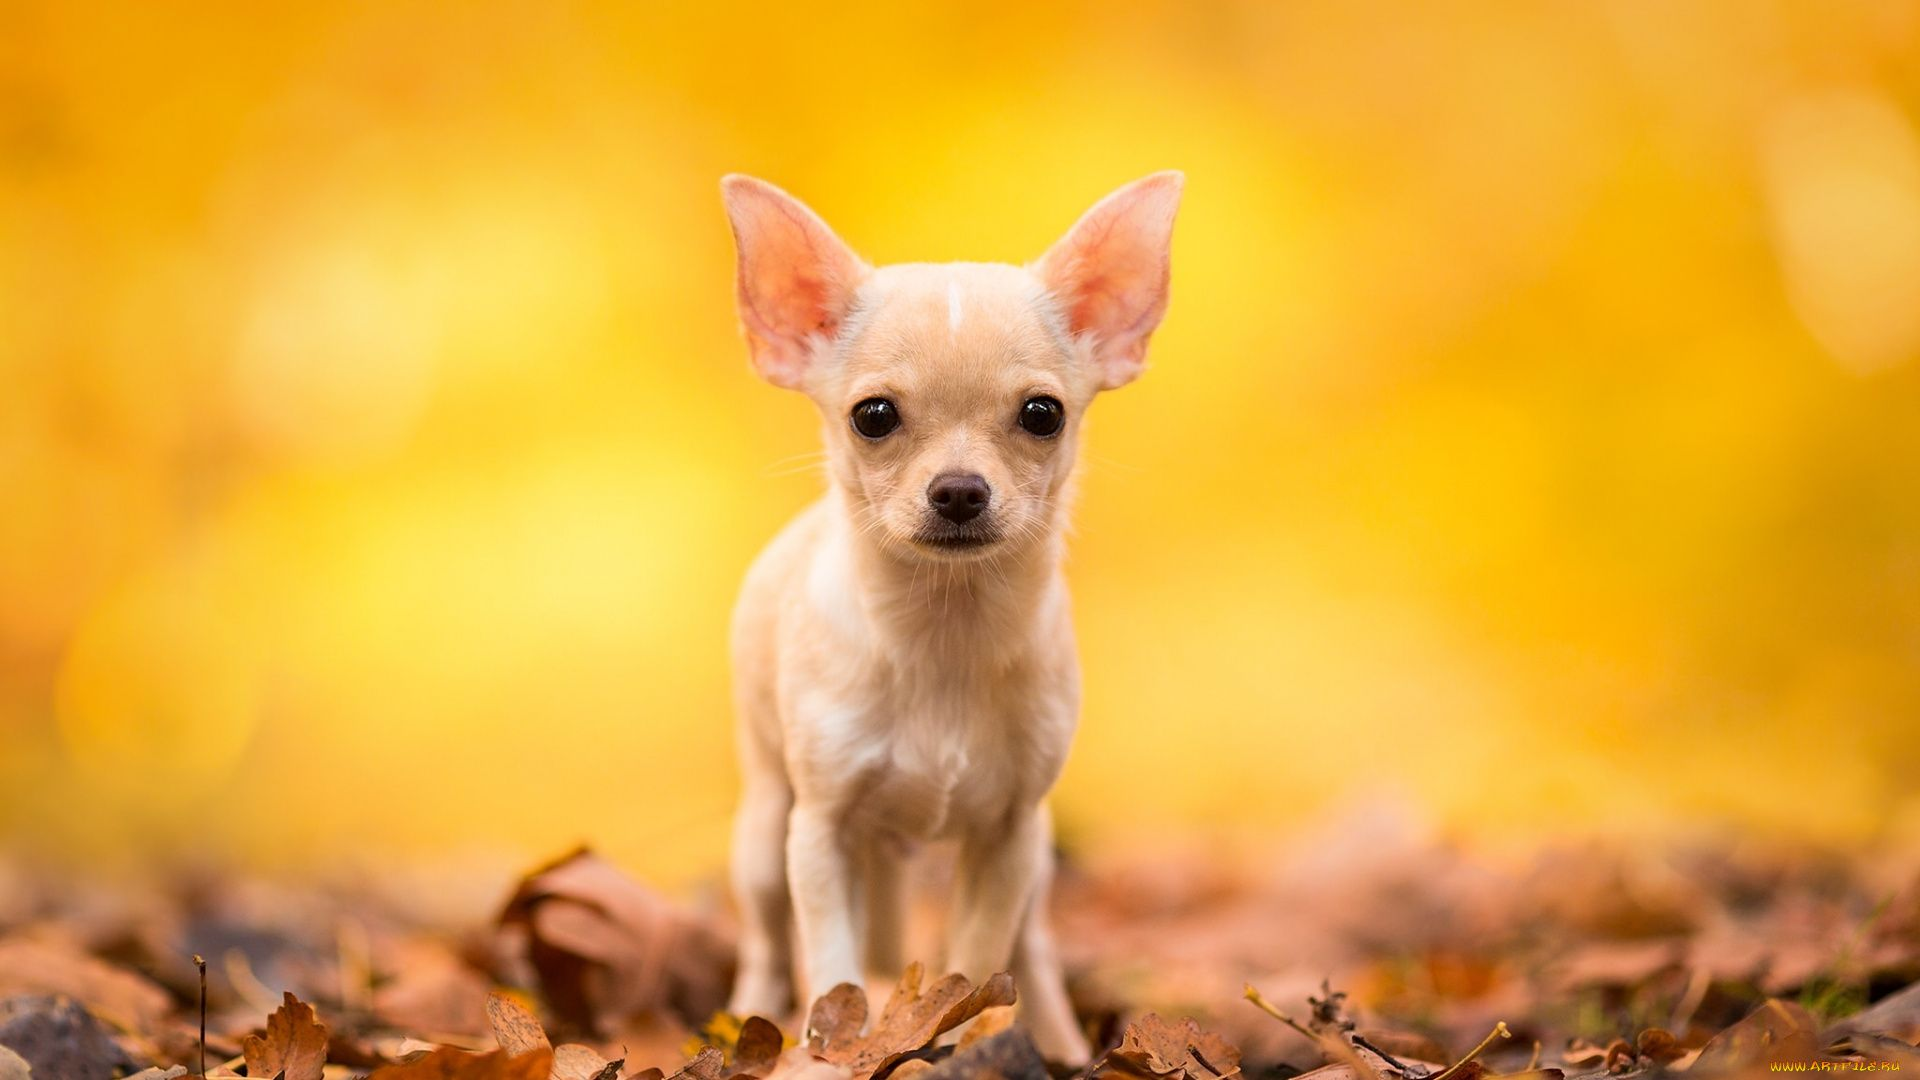 The Wallpapers Of Chihuahuas